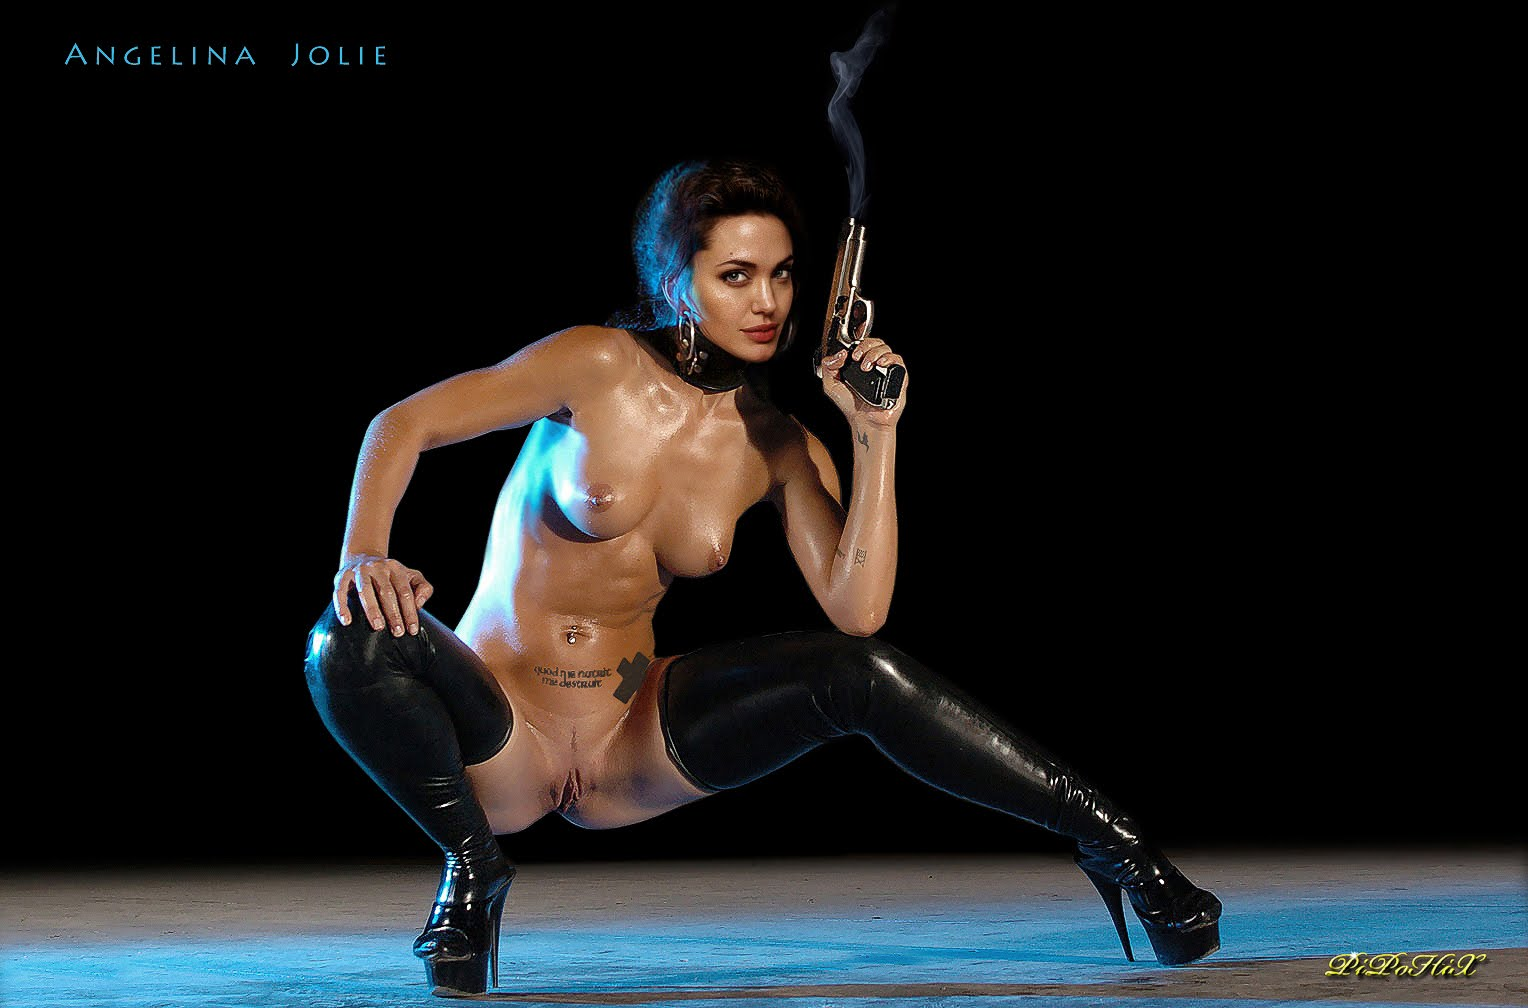 Angelina jolie naked from tomb raider nsfw thumbs